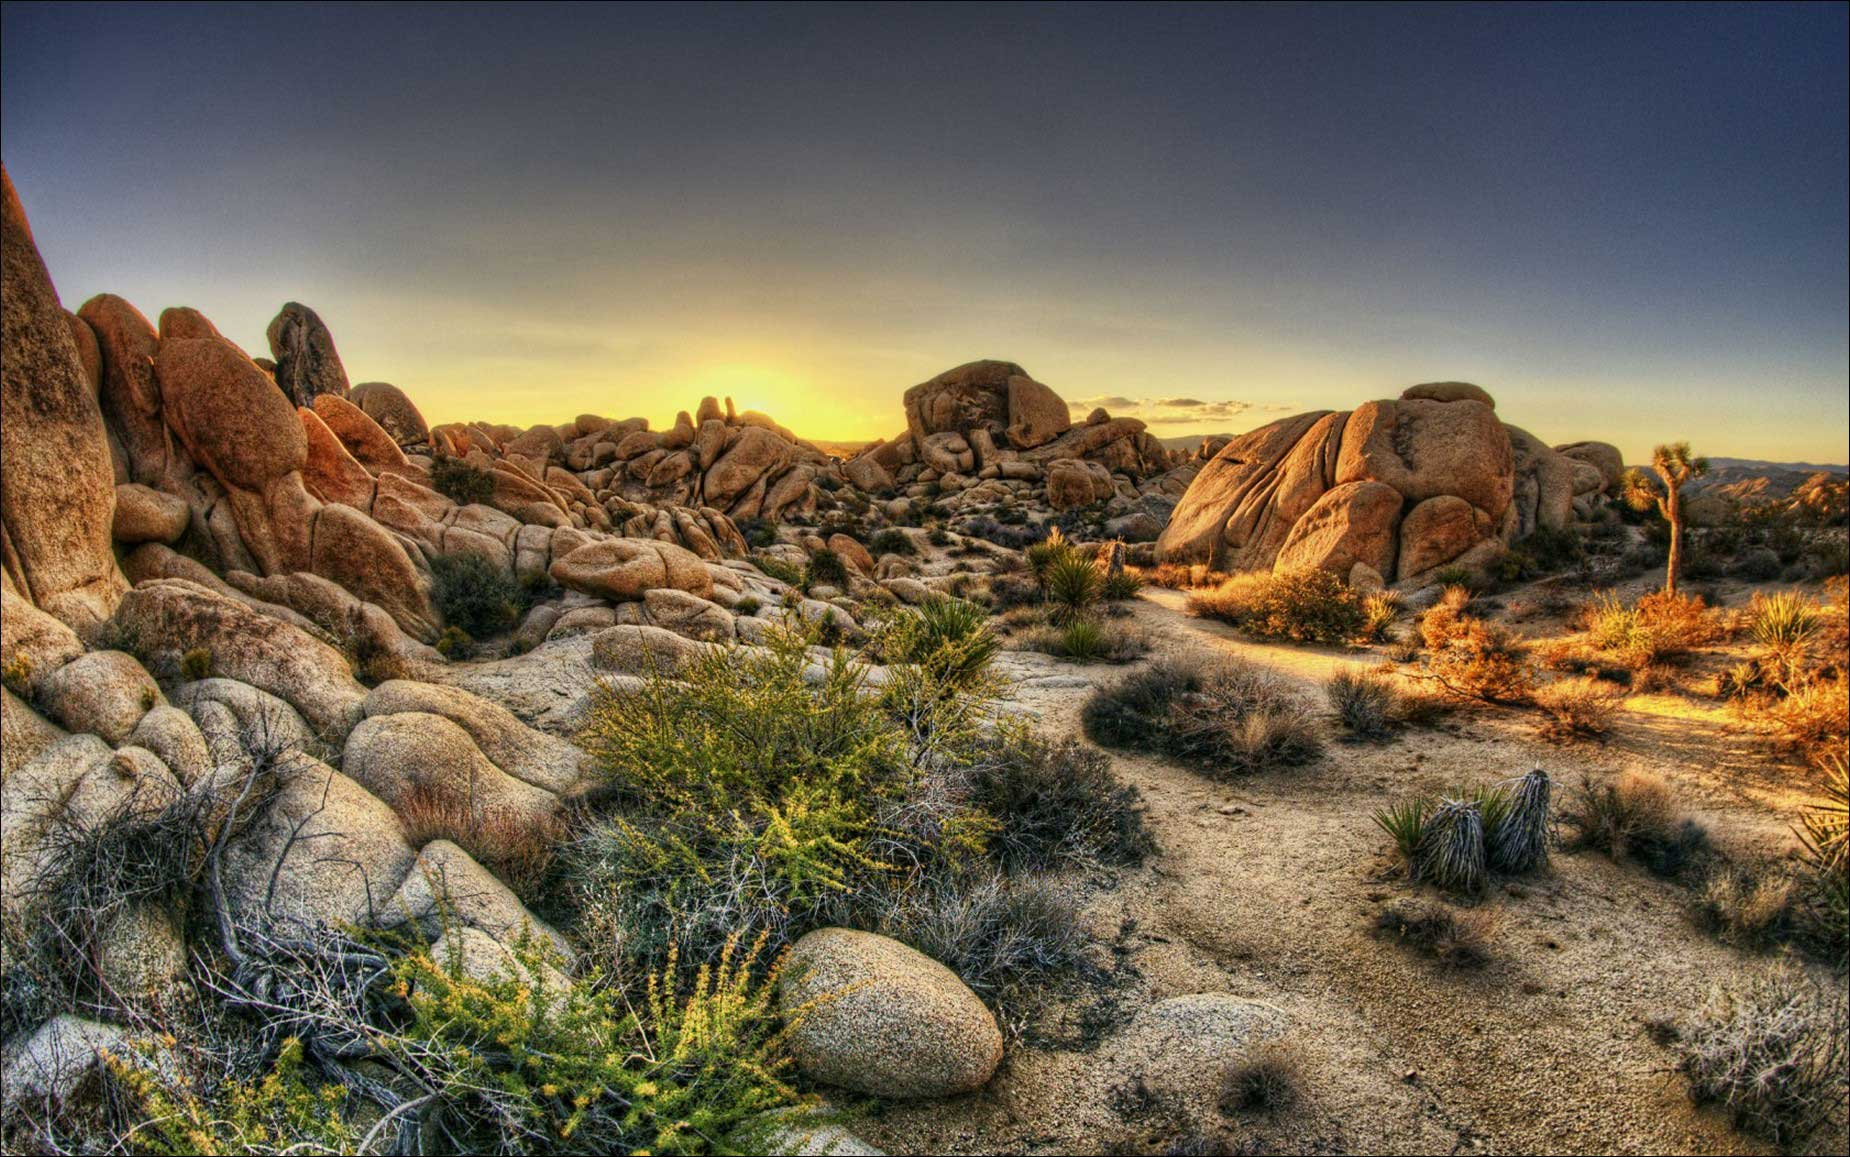 Joshua Tree National Park Wallpapers Landscape Photograph Driving